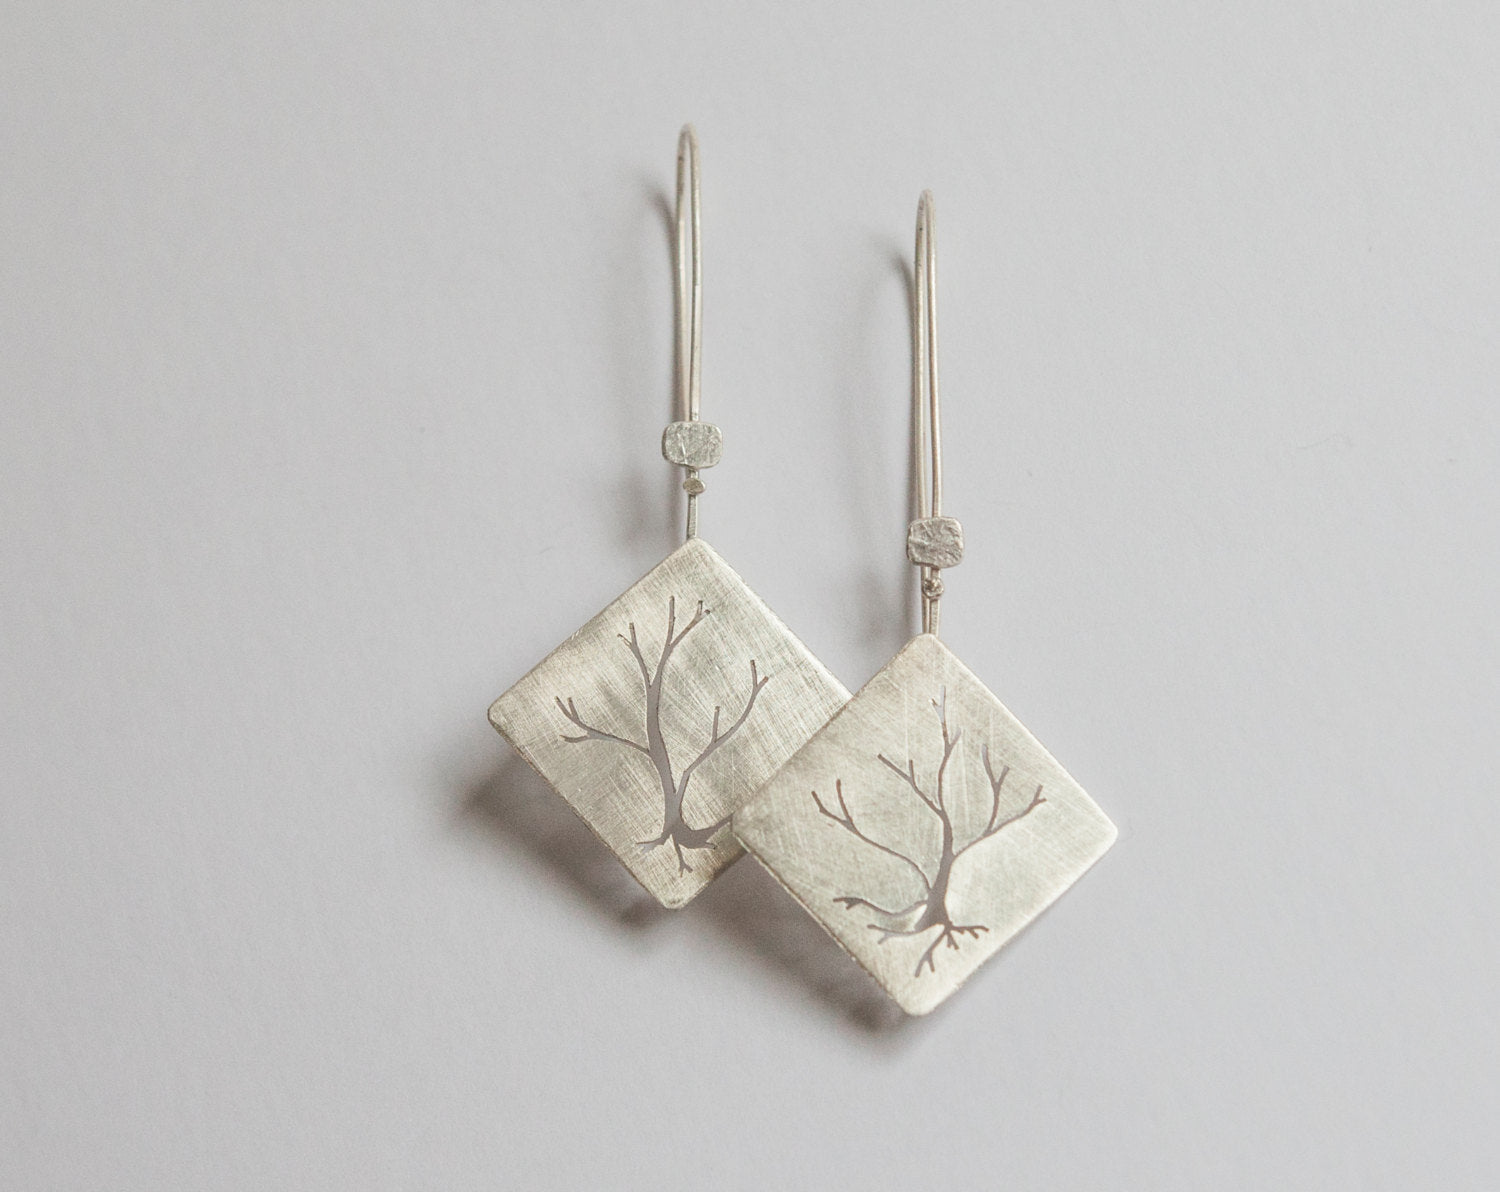 Dangling earrings in silver with tree cut out